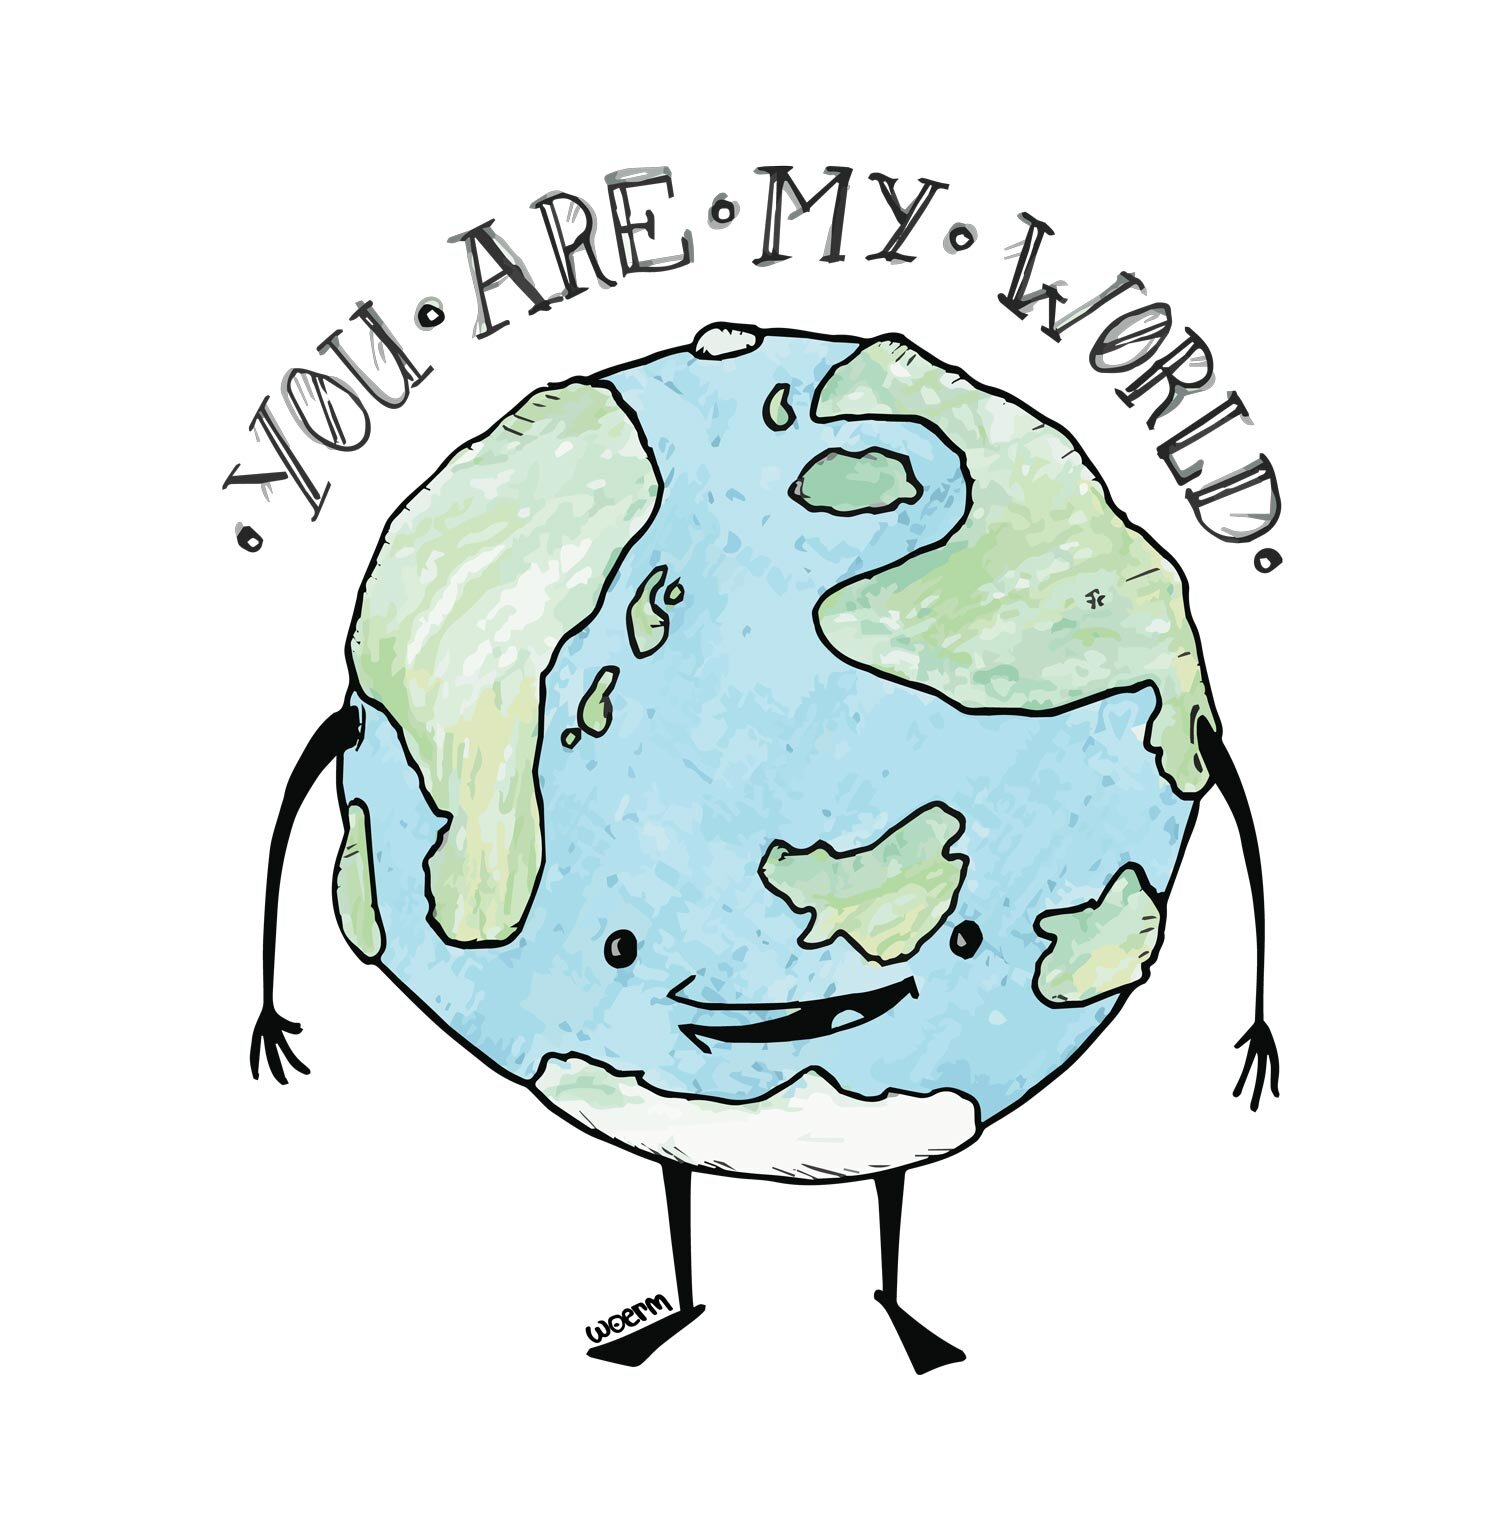 You-Are-My-World-illustration-by-woerm.jpg